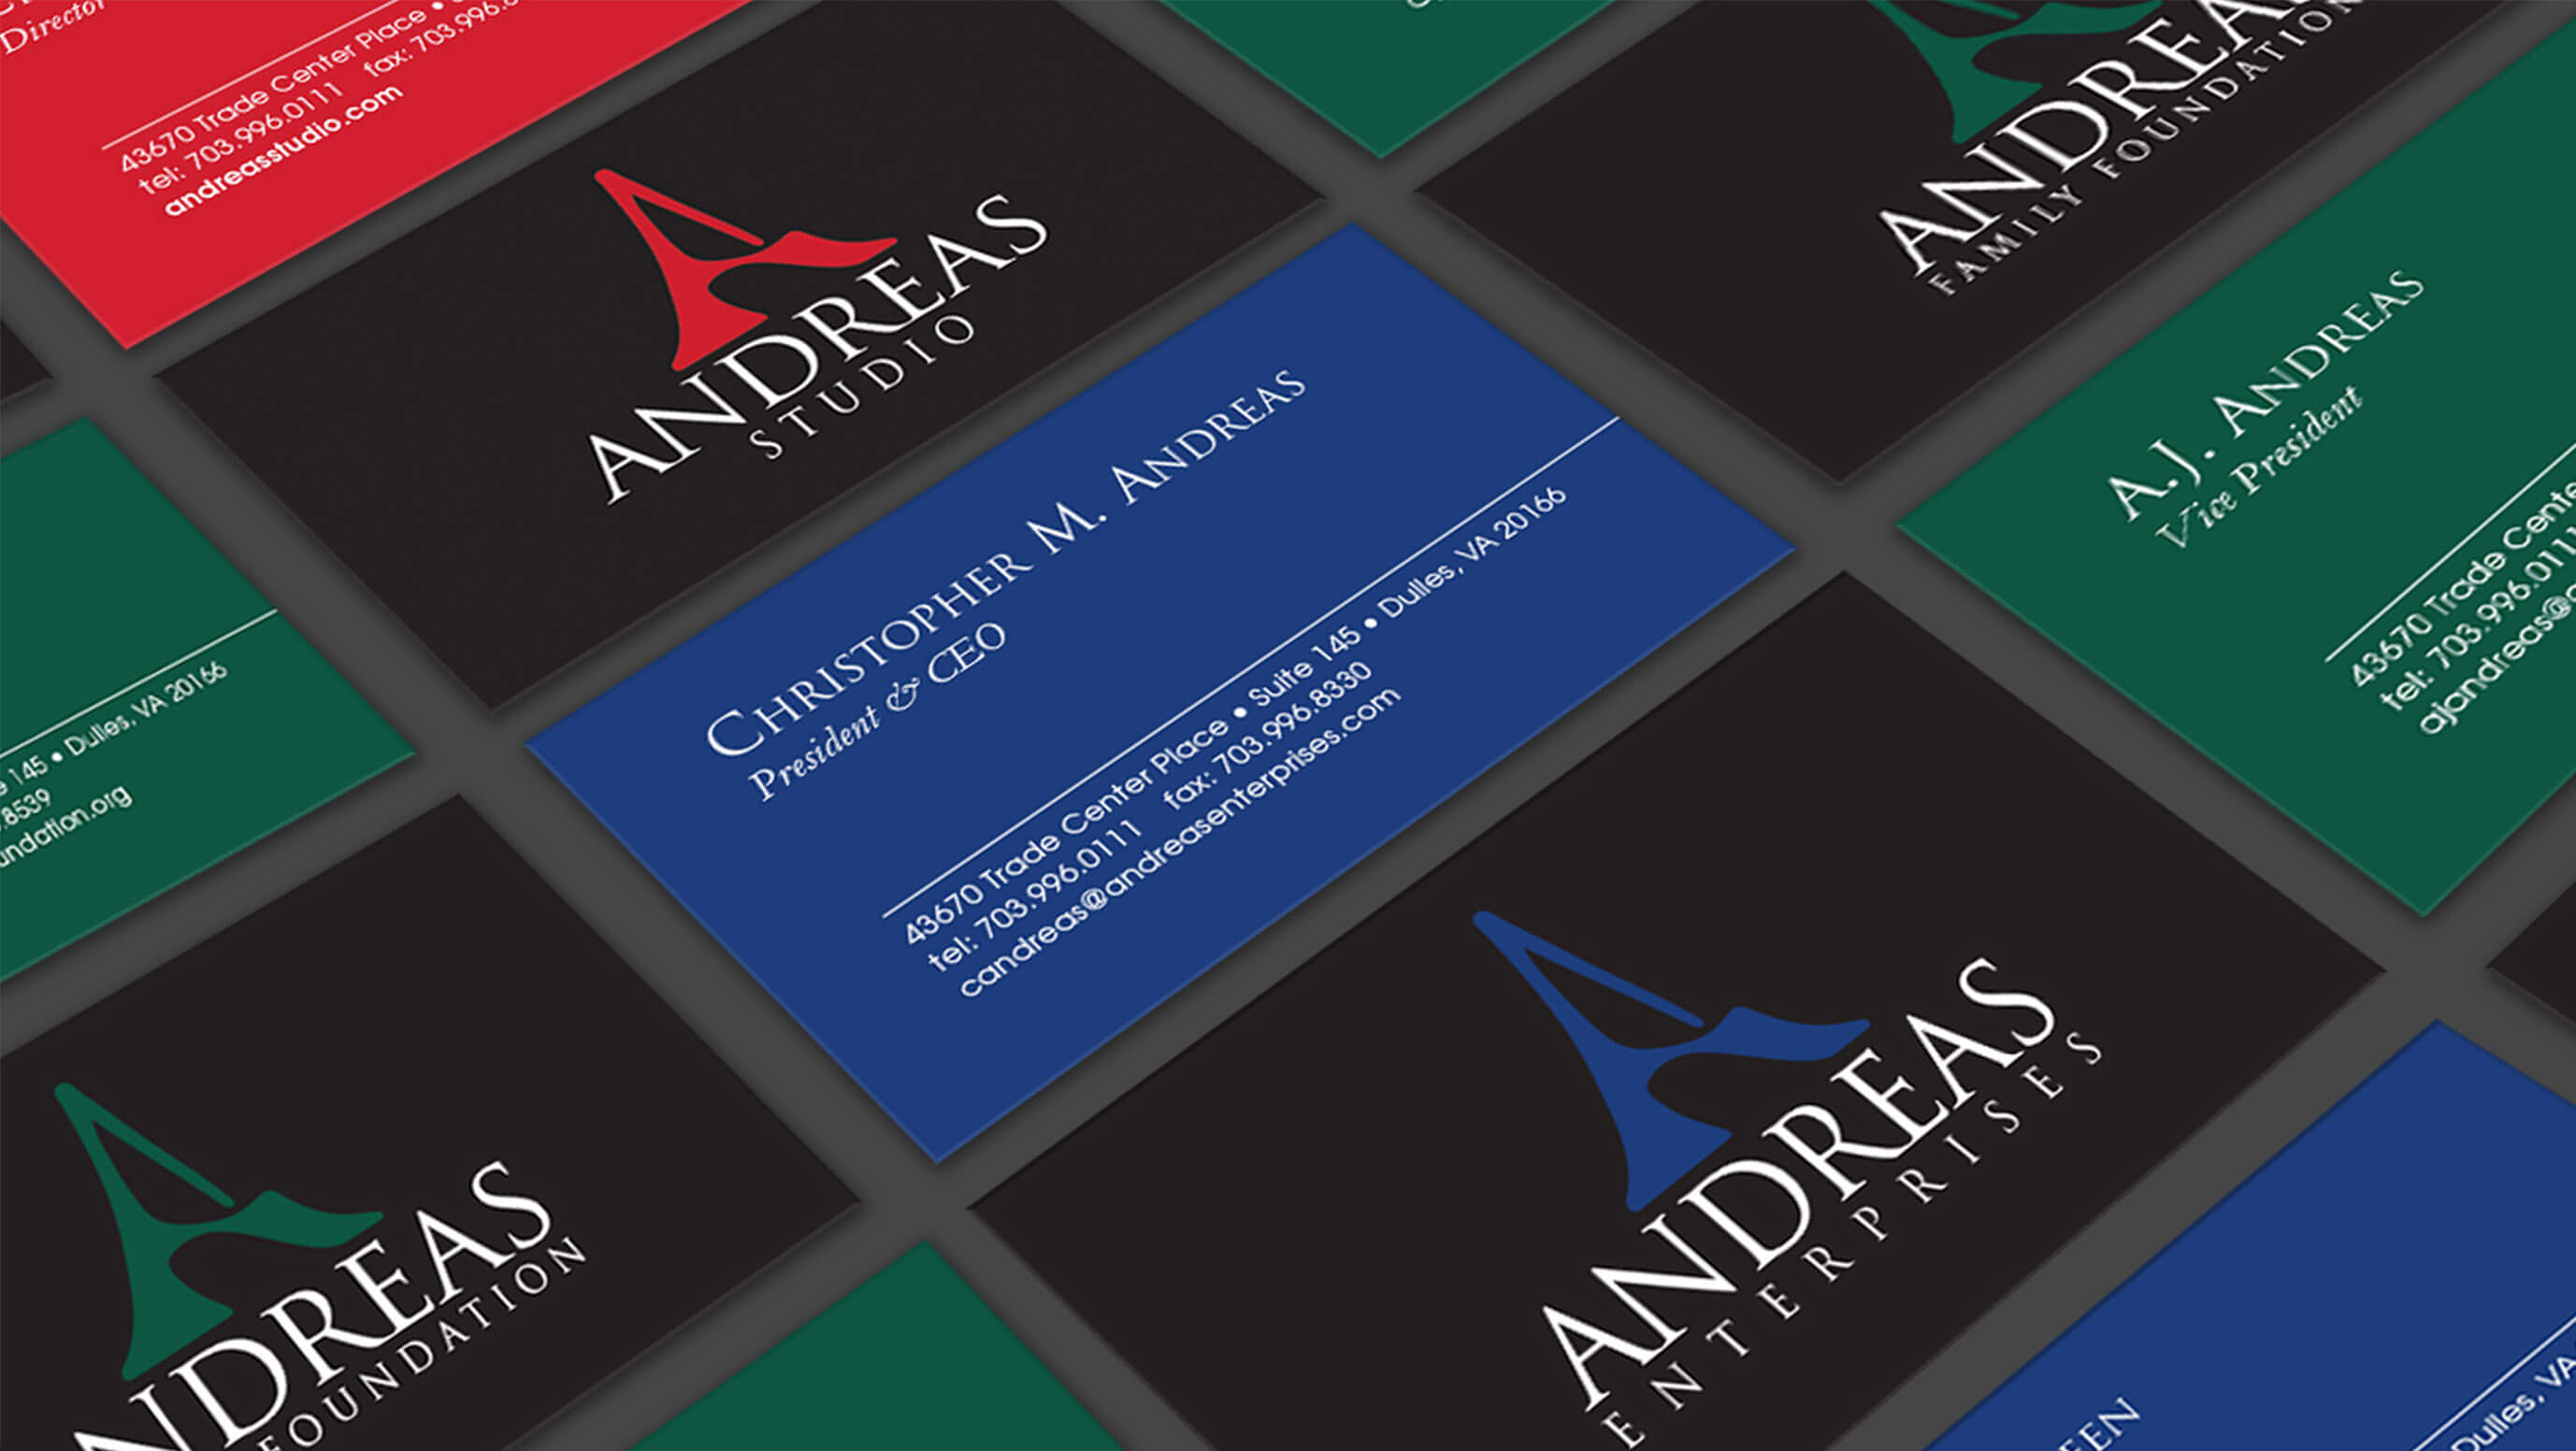 Branding & Collateral System Design Andreas Enterprises, Andreas Studio, Andreas Foundation